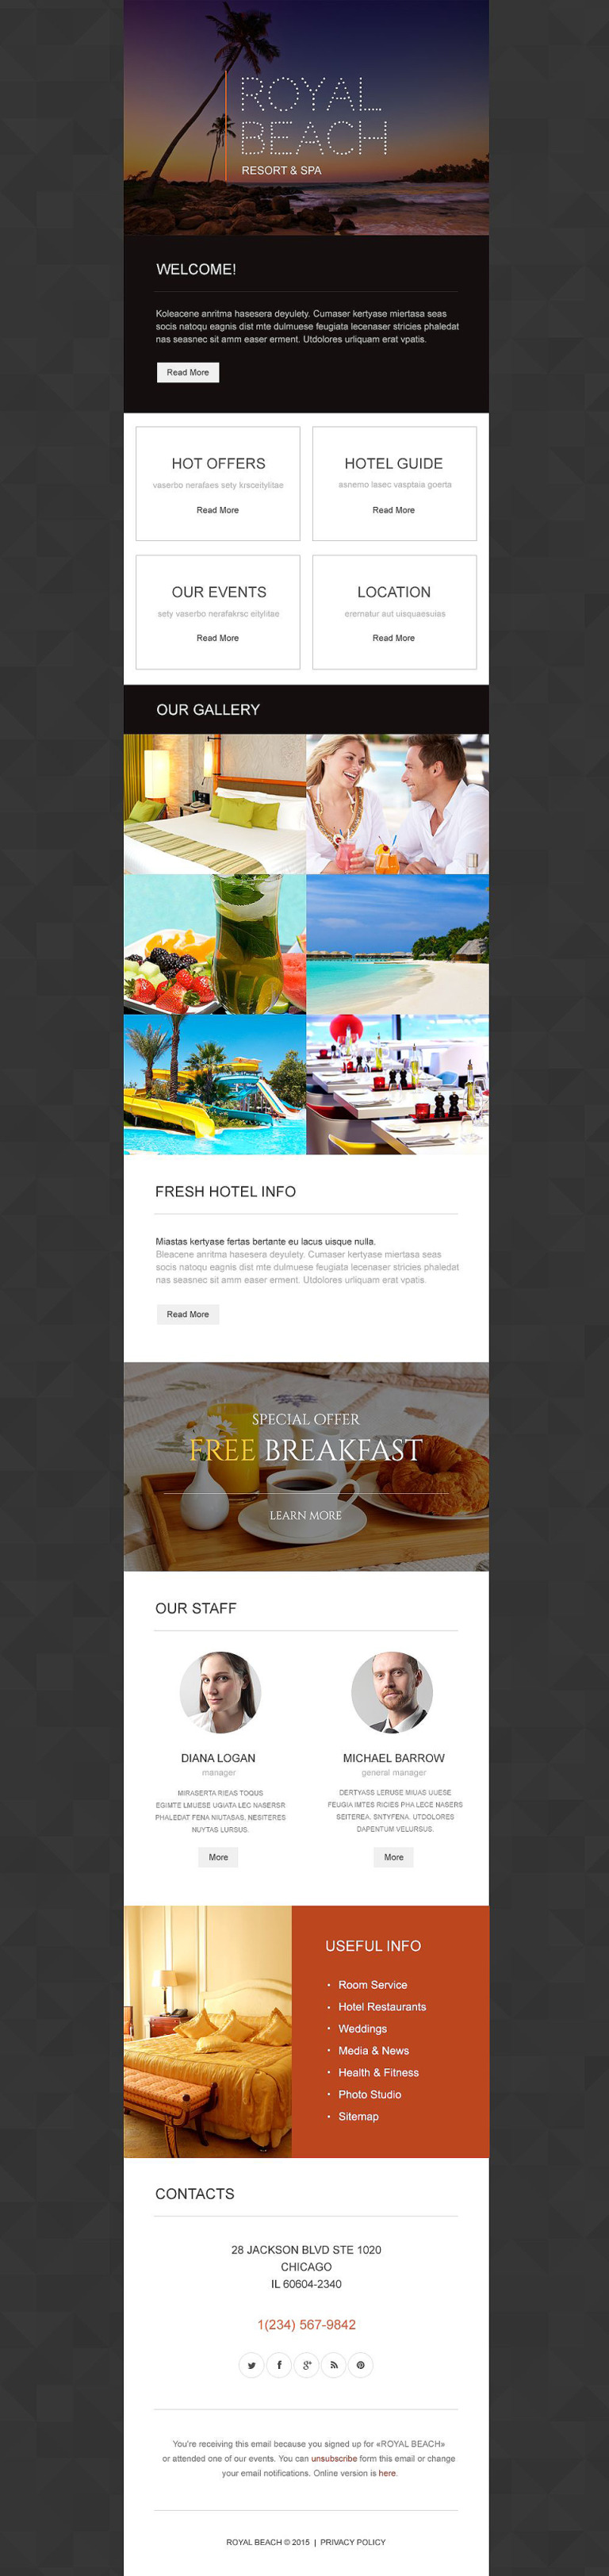 Travel Agency Responsive Newsletter Template New Screenshots BIG